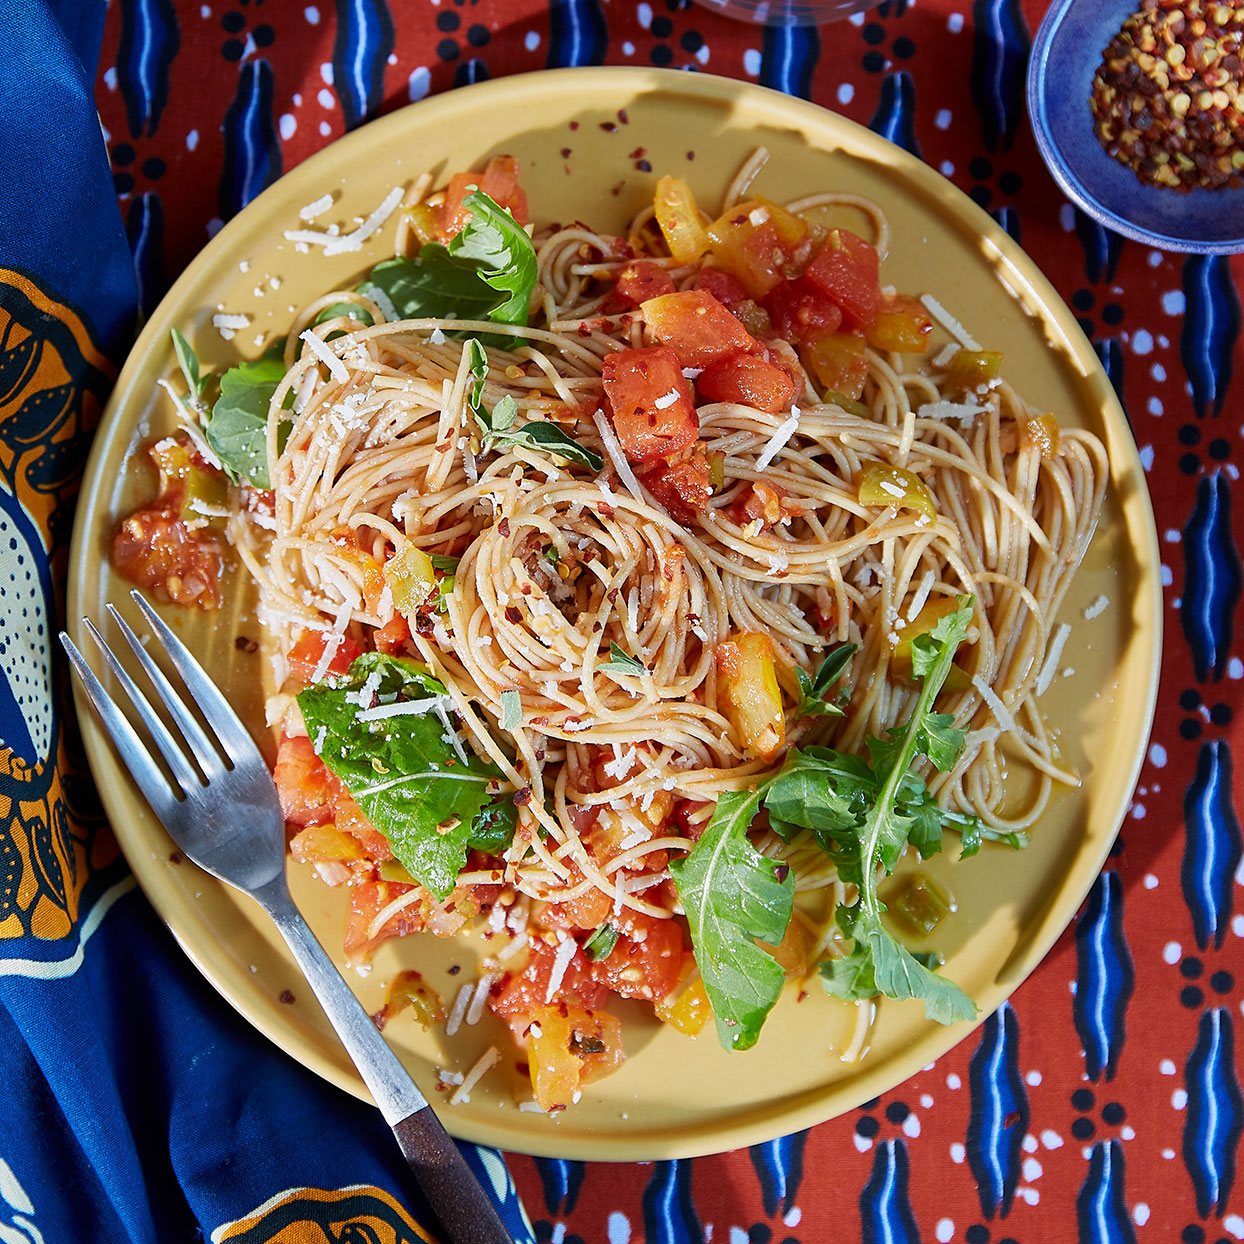 The simplicity of this healthy pasta recipe makes it good family fare. For a touch of heat, mild Anaheim chiles are augmented with crushed red pepper and garlic. Source: EatingWell Magazine, May 2020